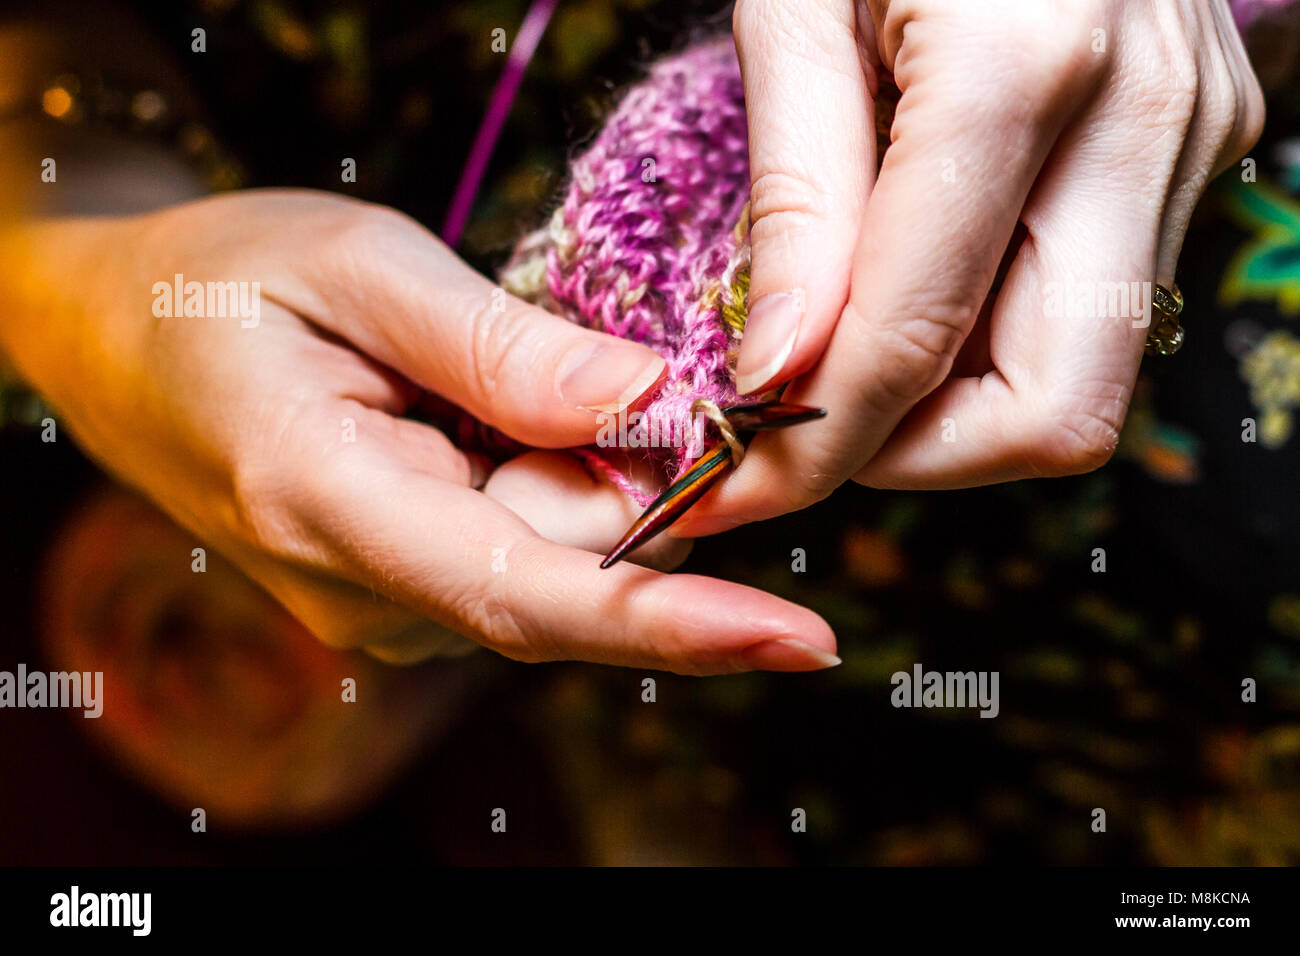 Hands Knitting - Stock Image